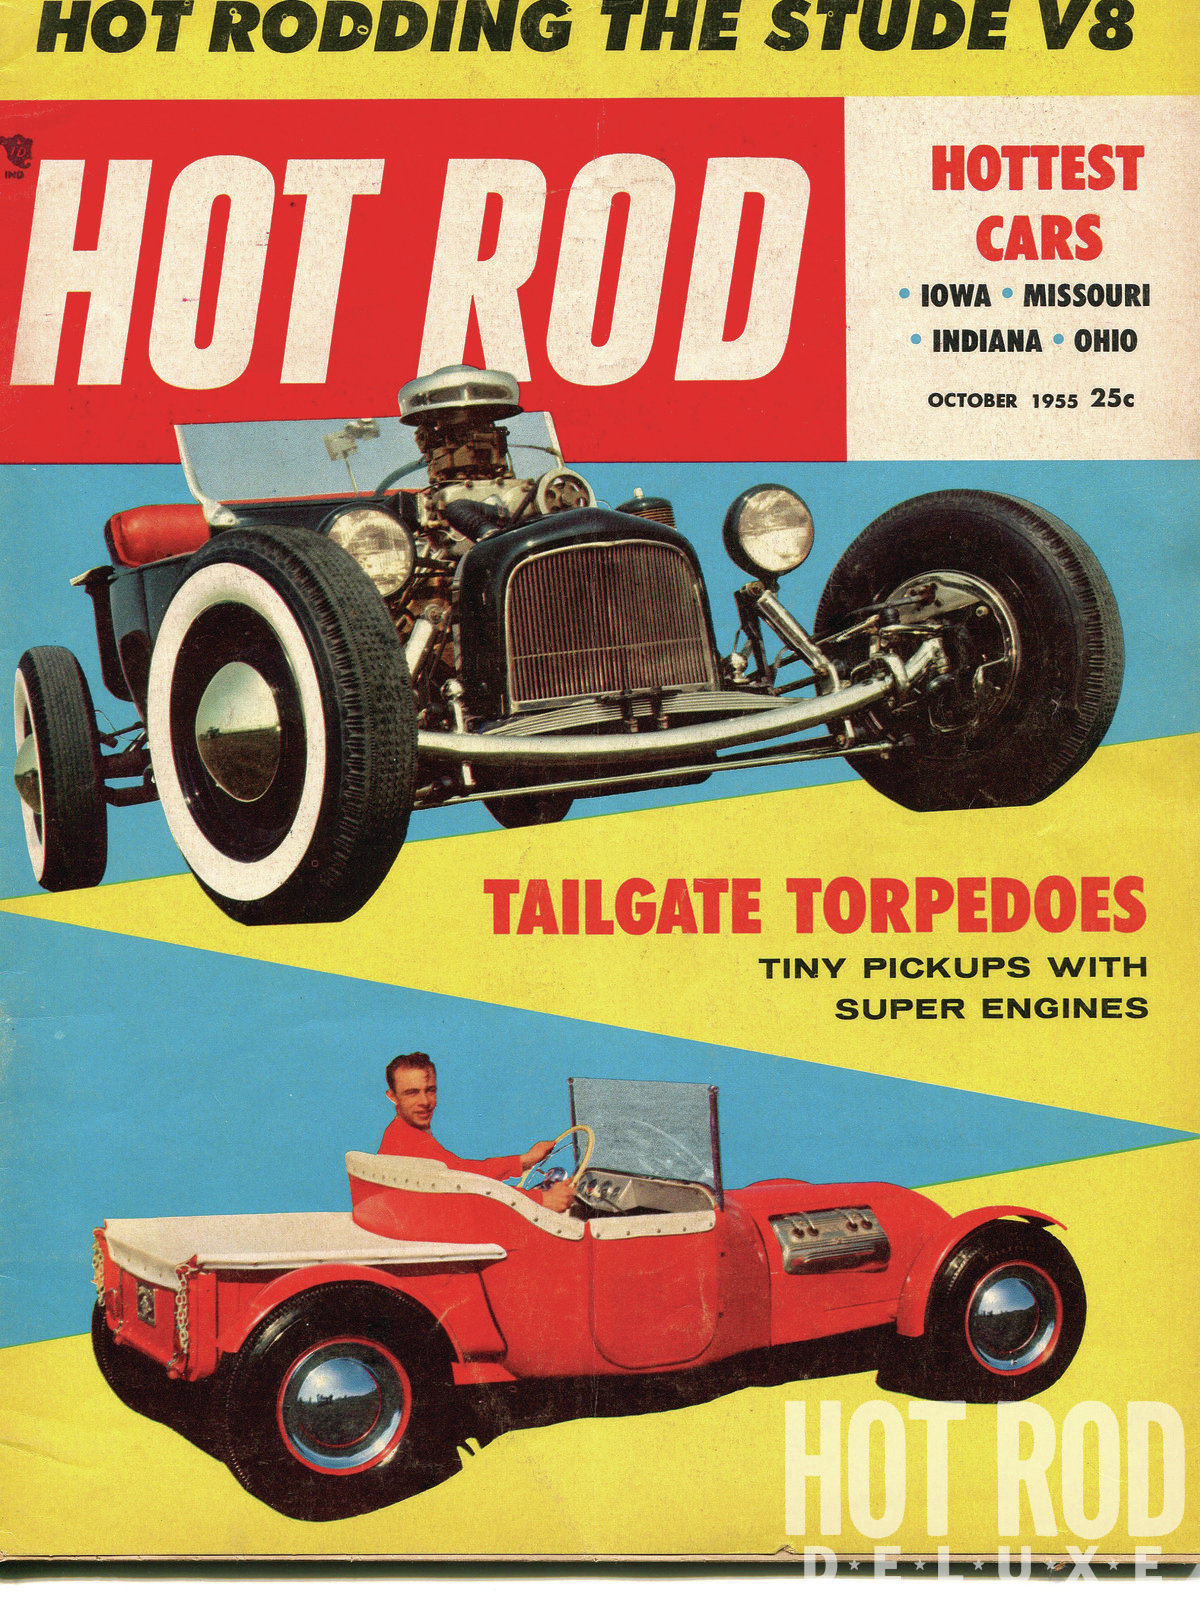 It's been 58 years since HRM's main cover story launched the T-bucket craze. No byline appears above the well-written, tech-heavy article inside, which was probably penned by Editor Wally Parks and/or Technical Editor Racer Brown.